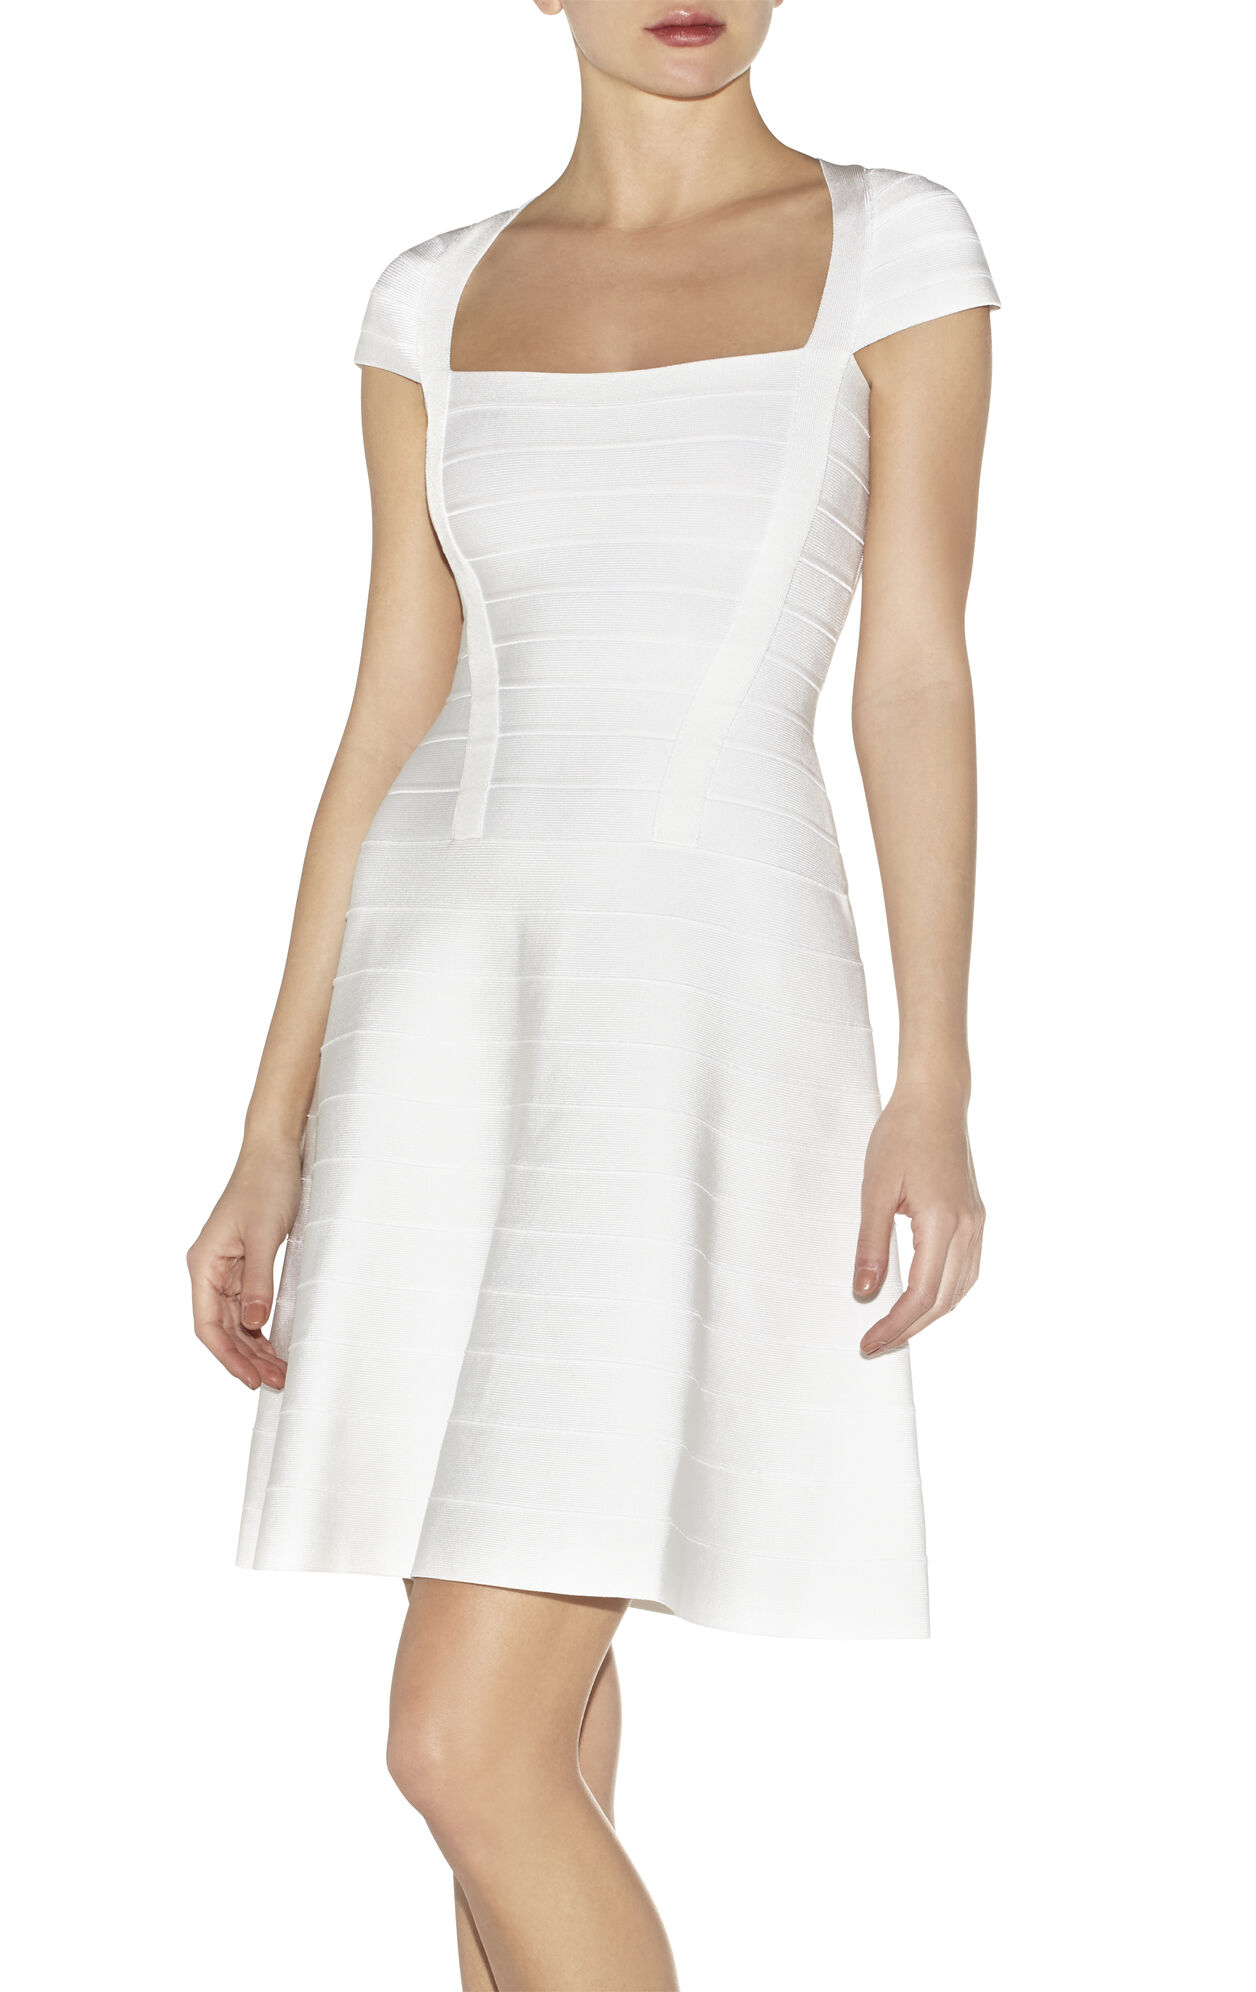 Nahla Signature Bandage Dress